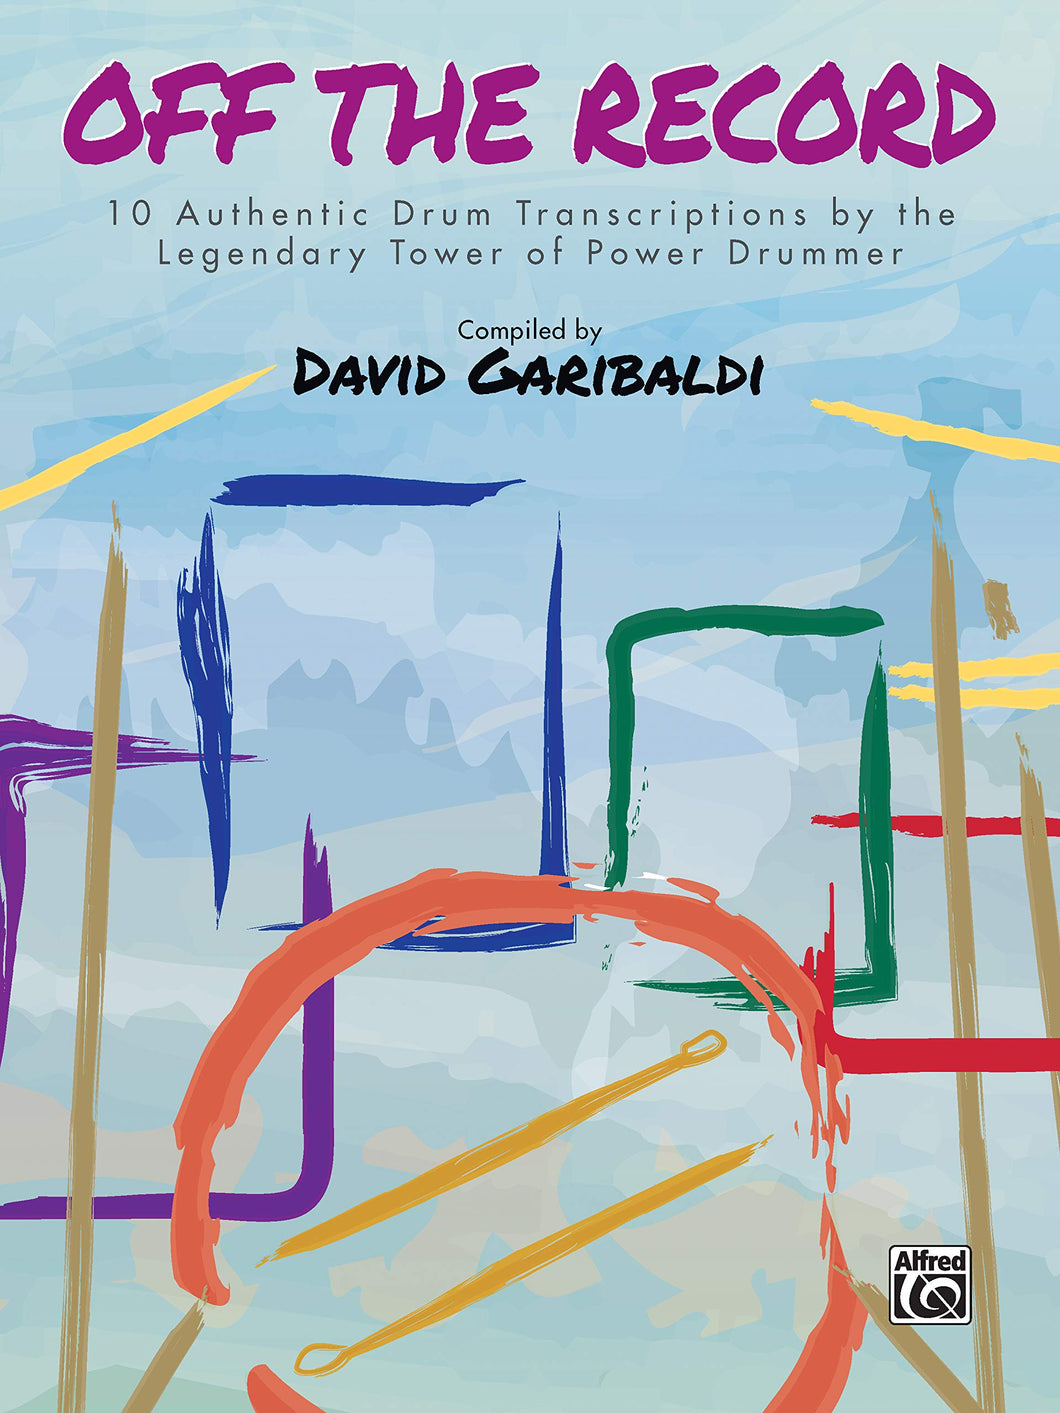 Can't You See (You Doin' Me Wrong) - David Garibaldi - Collection of Drum Transcriptions / Drum Sheet Music - Alfred Music DGOTR